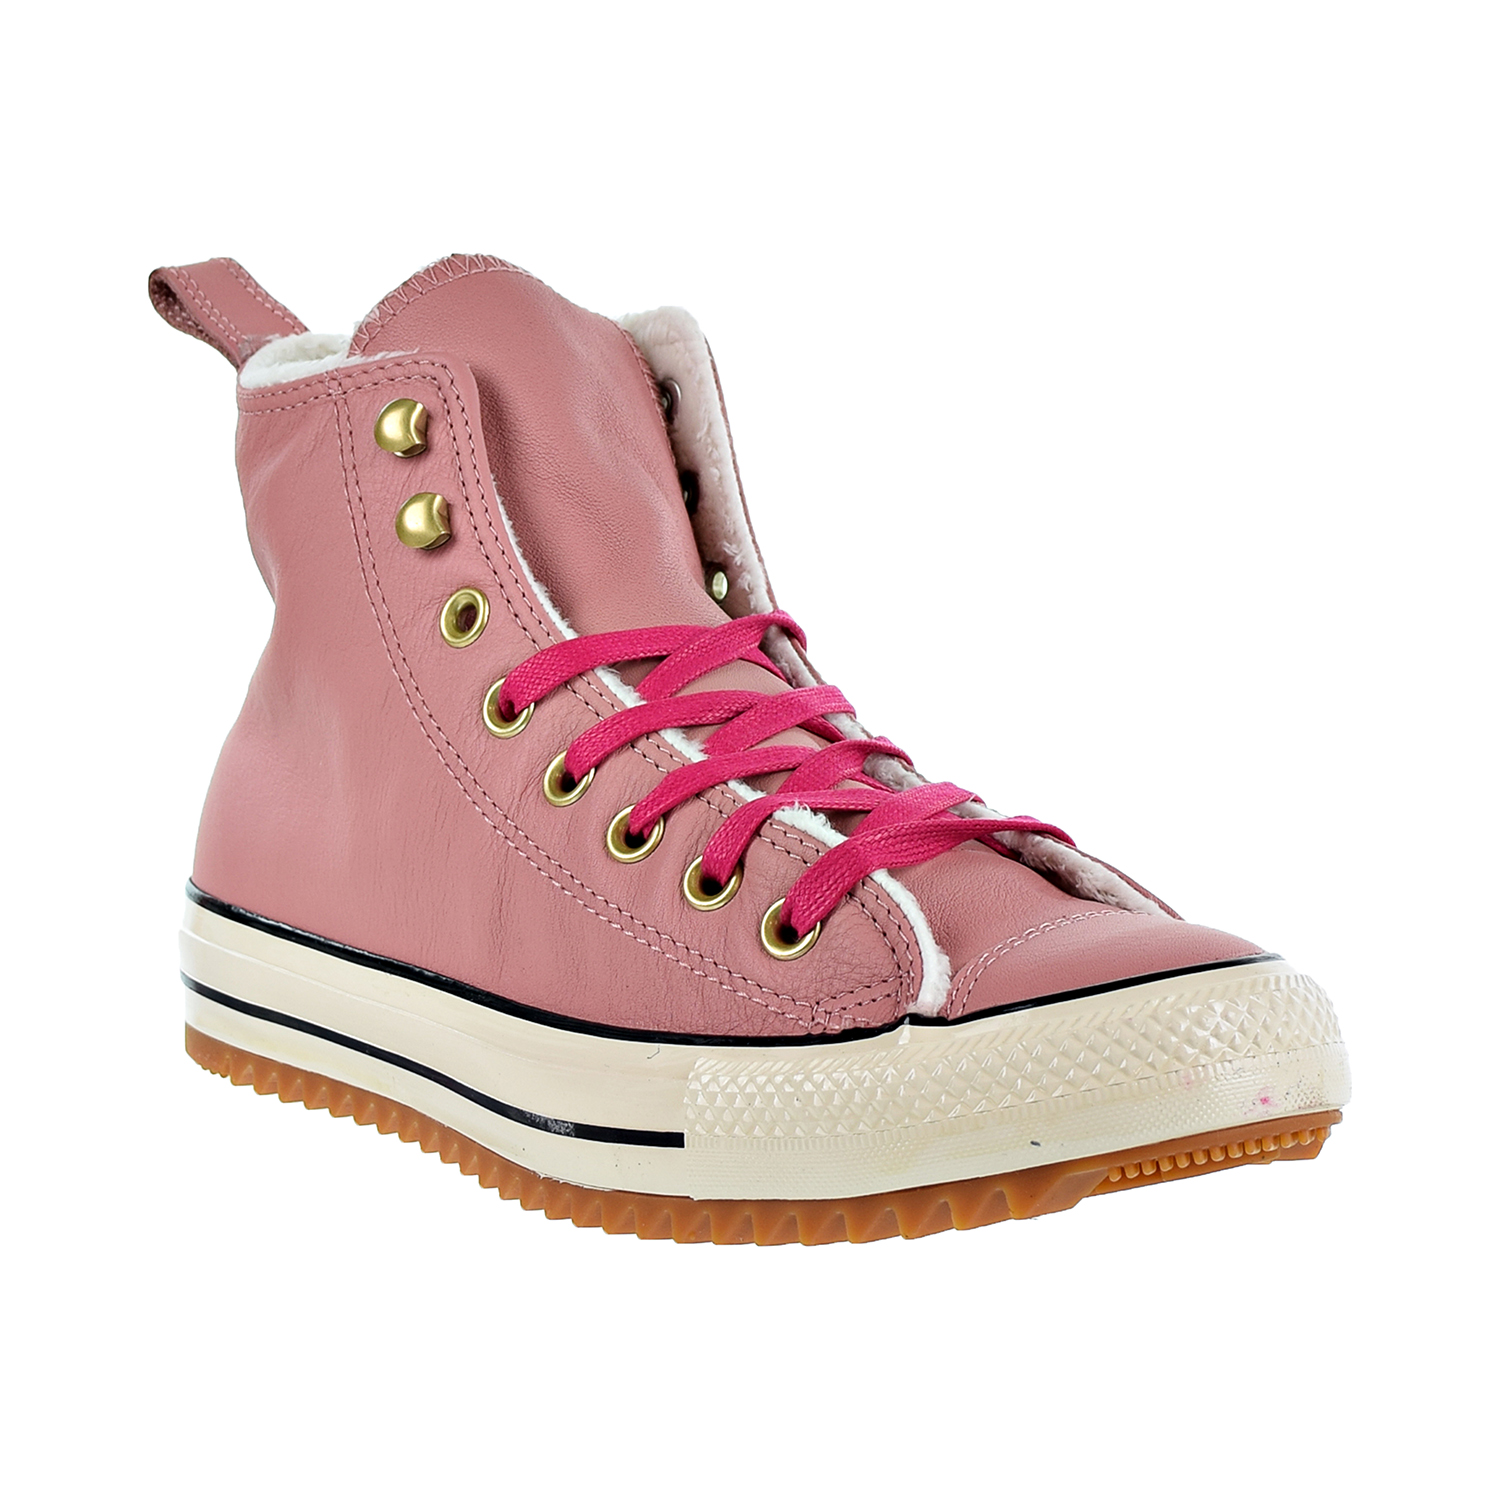 3af8902f2f4 Converse Chuck Taylor All Star Hiker Boot Hi Unisex Sneakers Rust Pink Pink  Pop 162477c